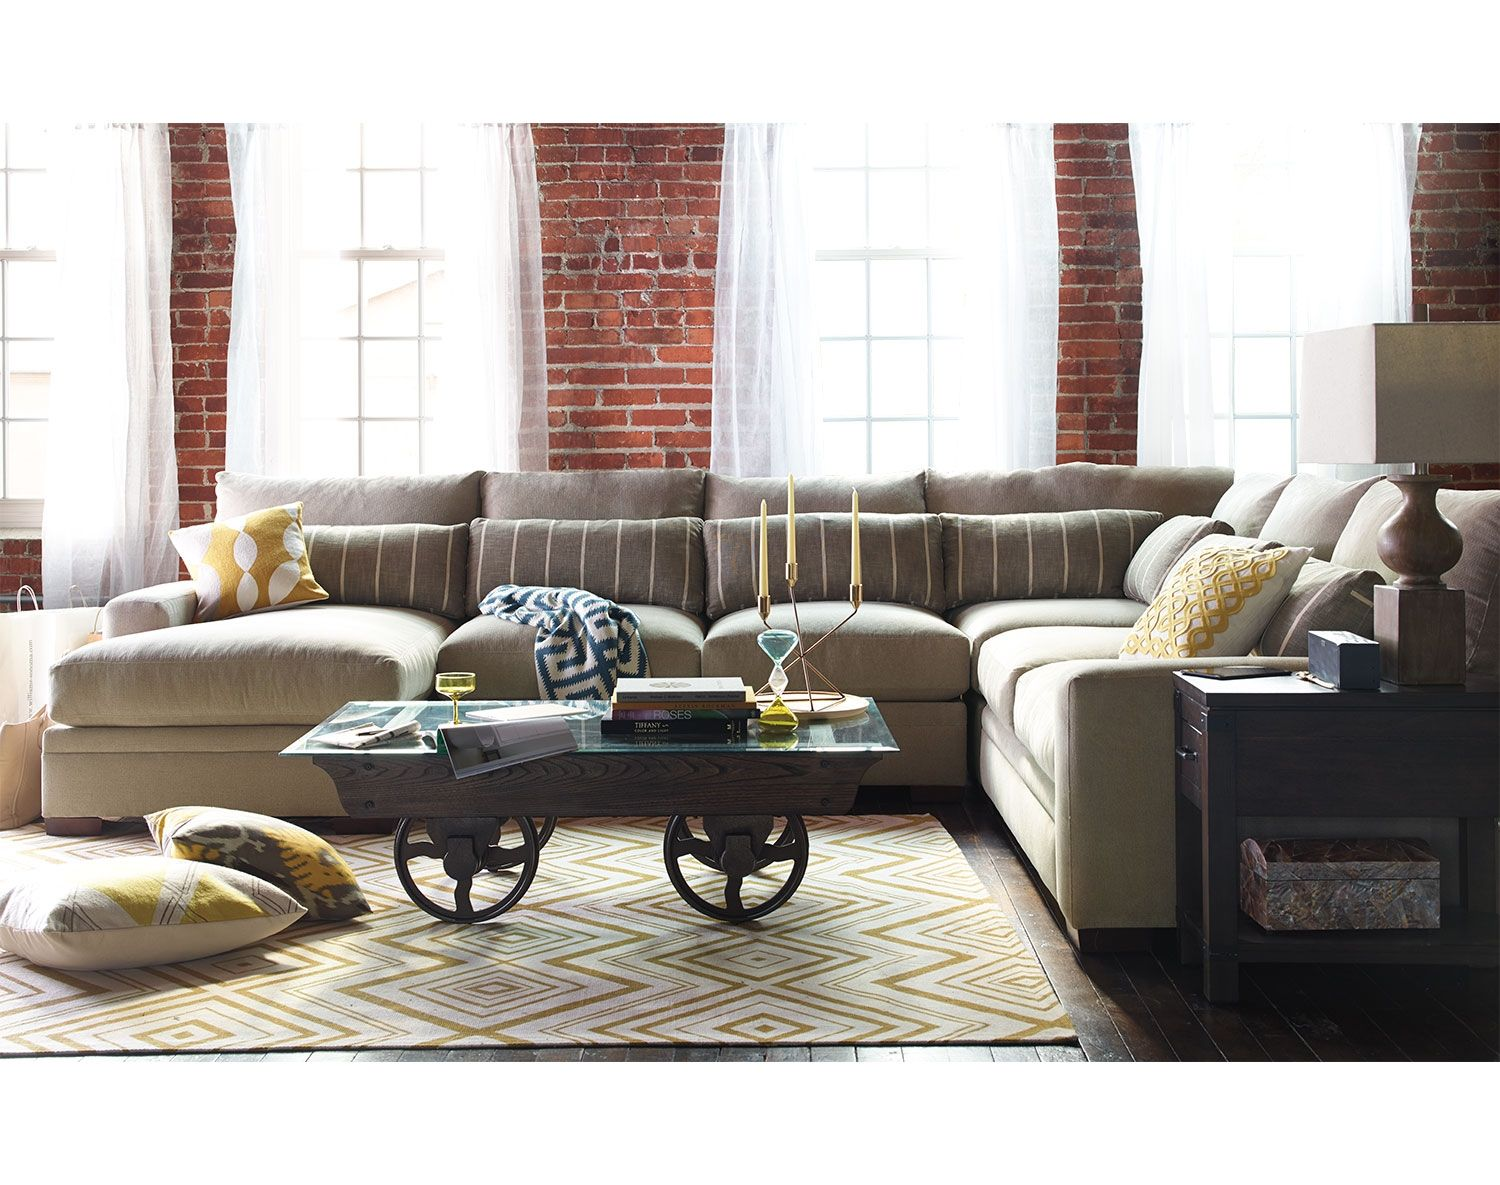 Living Room Design With Sectional Sofa Amusing My Favorite But It Cost $2999 The Ventura Collection 2018